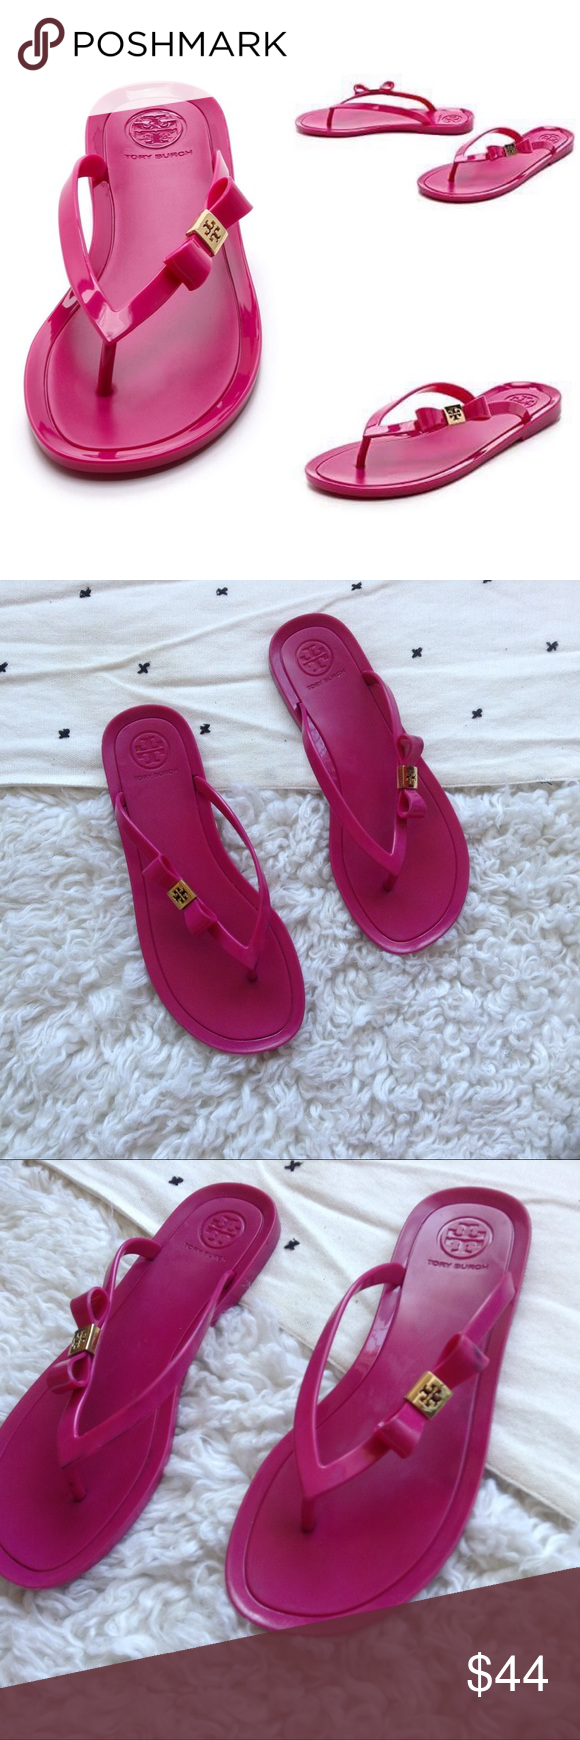 4ff22c257d1624 Tory Burch Michaela Pink Bow Jelly Flip Flops - jelly style sandals - logo  bow -